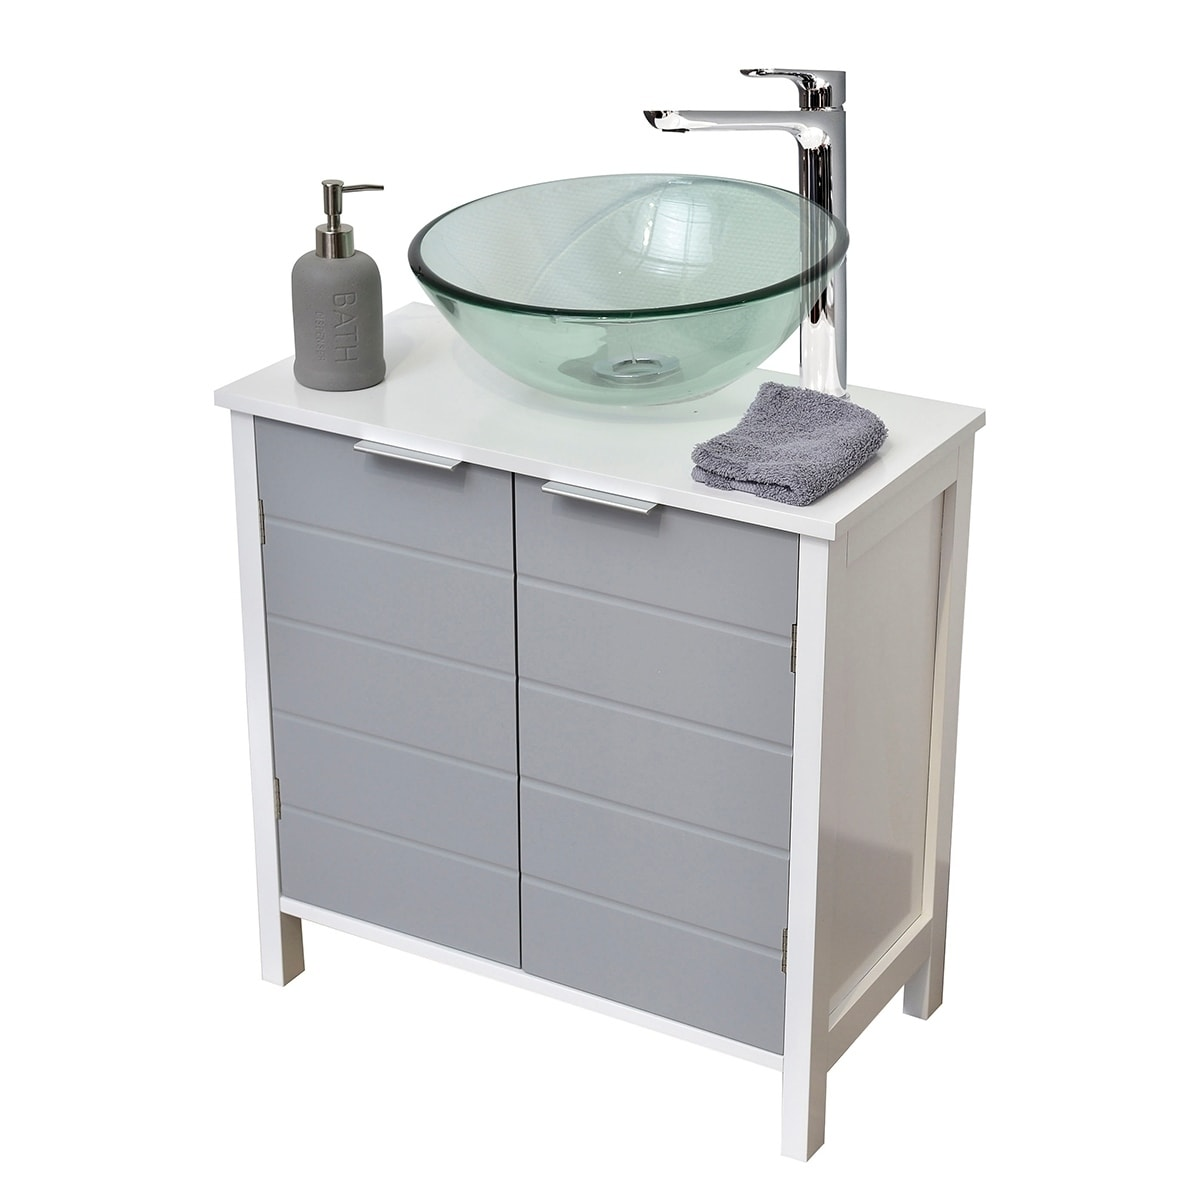 Evideco non pedestal under sink storage vanity cabinet - Bathroom vanity under sink organizer ...